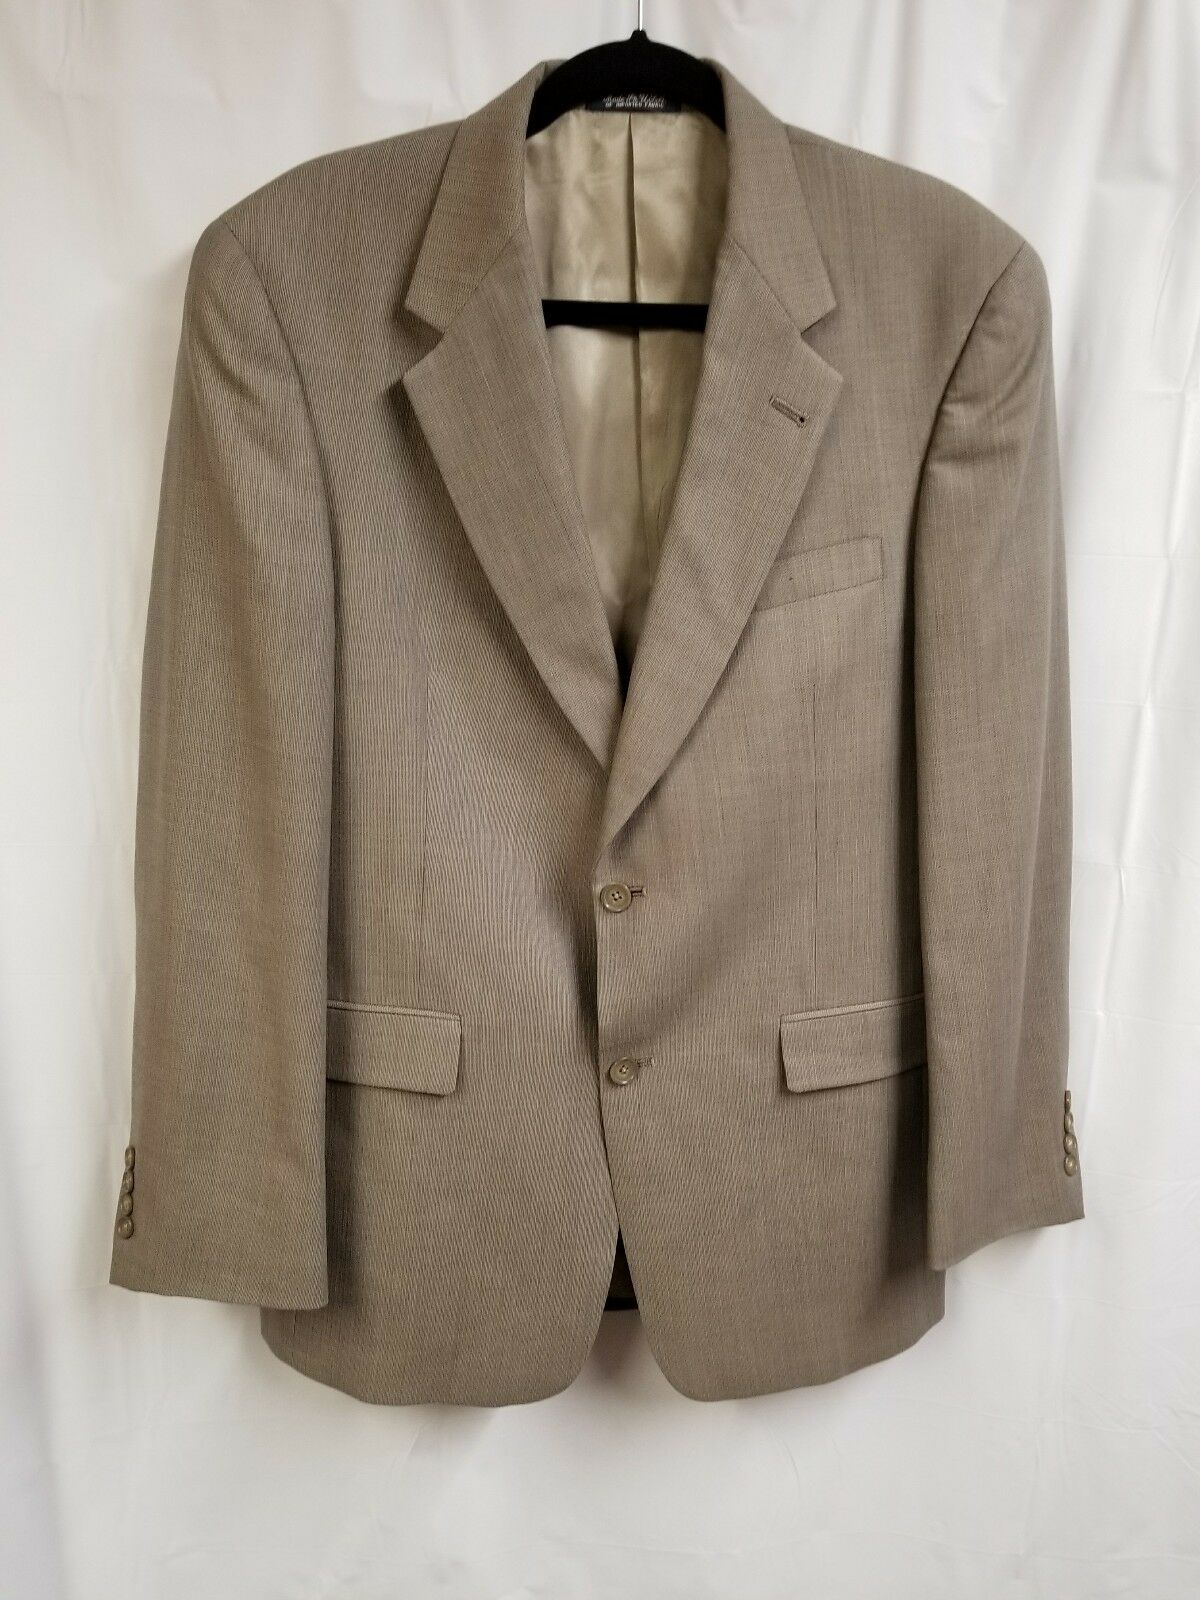 Men's Suit By Austin Reed.  Preowned.